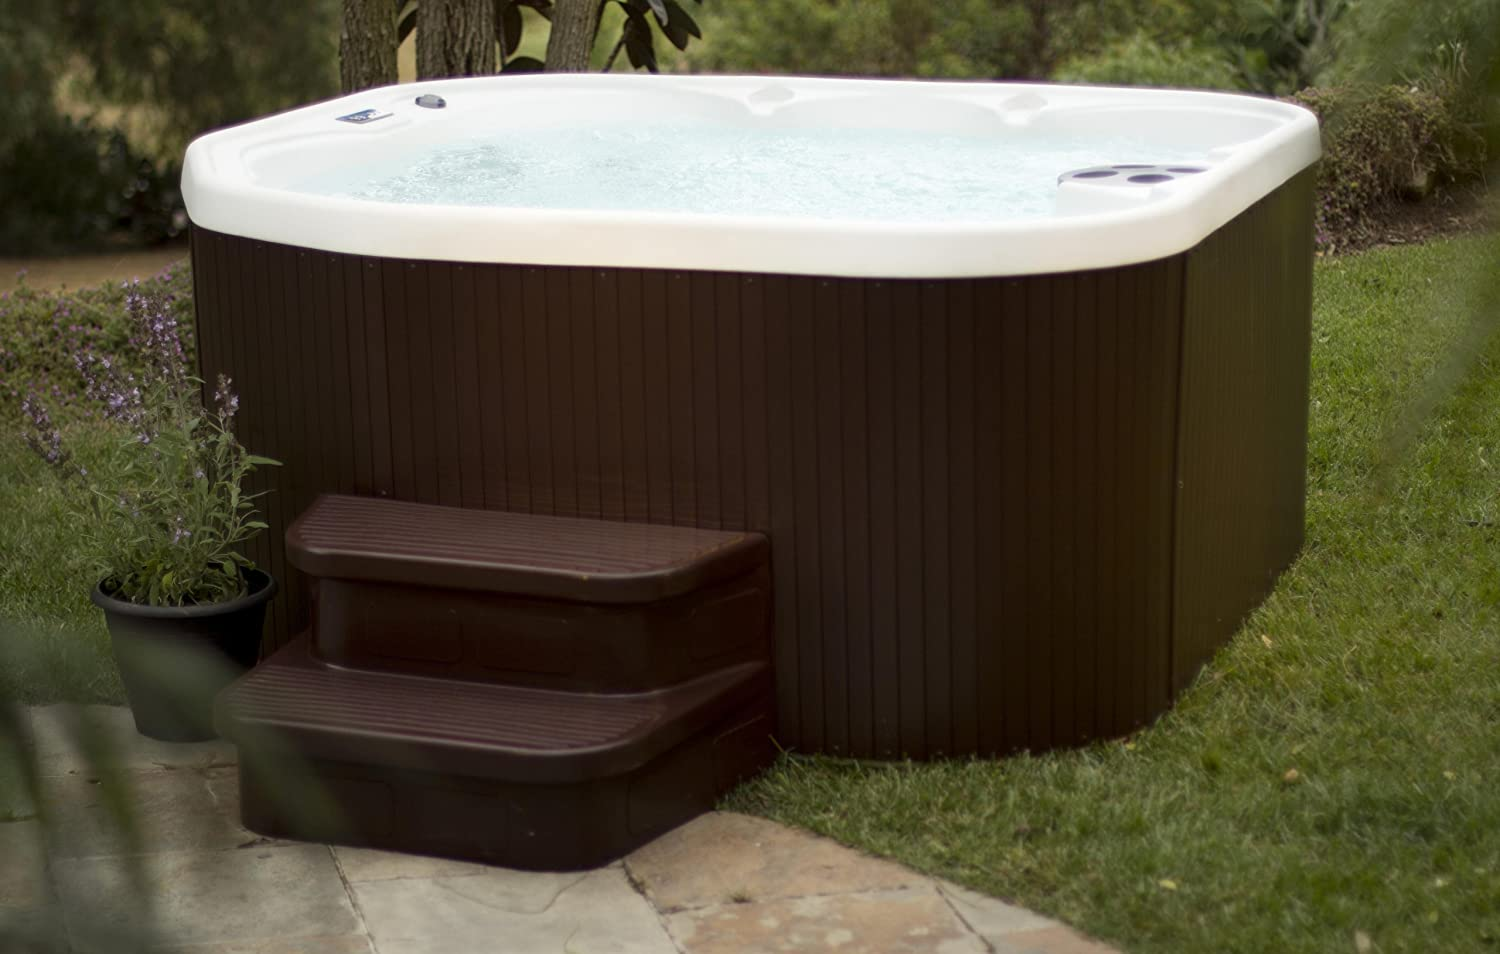 subwoofer jet p coronado tub system dlx reviews american with dx person tubs hot spas stereo lounger spa lifesmart coranado bluetooth